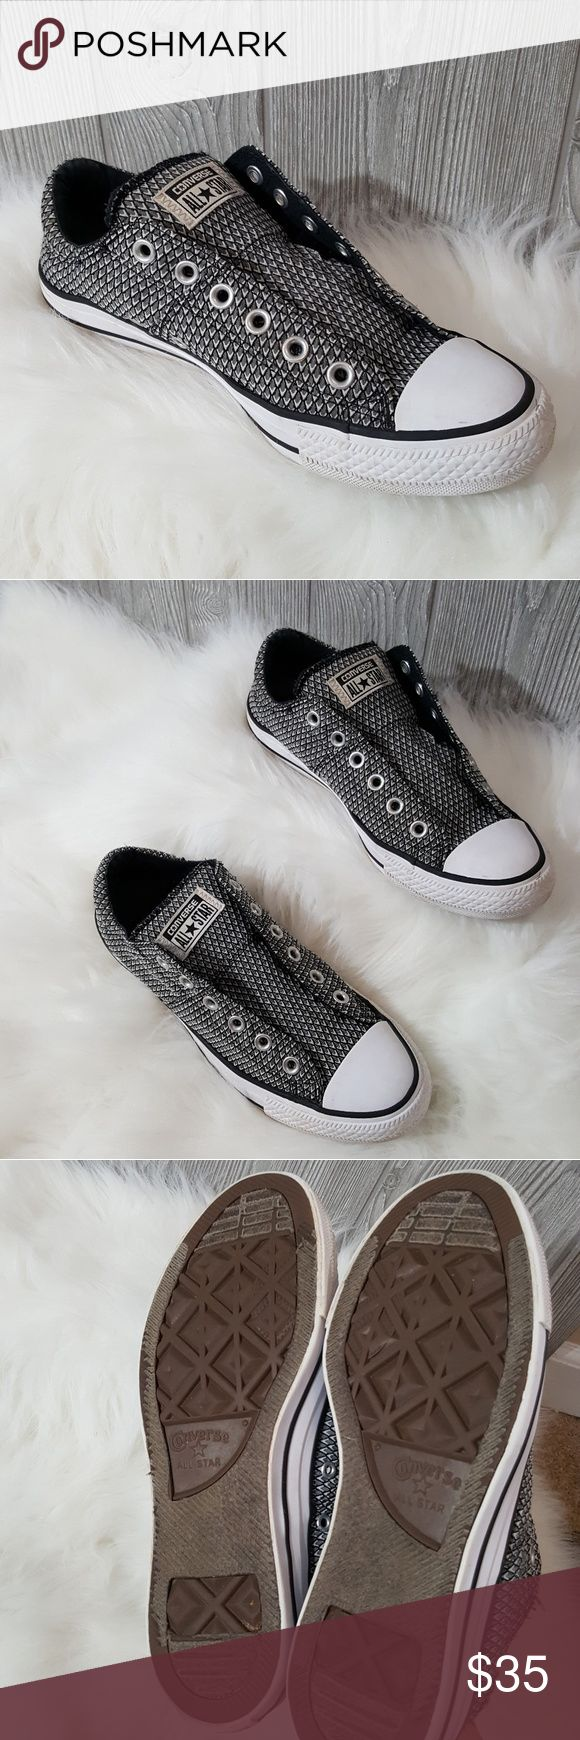 9 converse slip on Good used condition Converse slip on shoes size women's 9. Shoes Sneakers